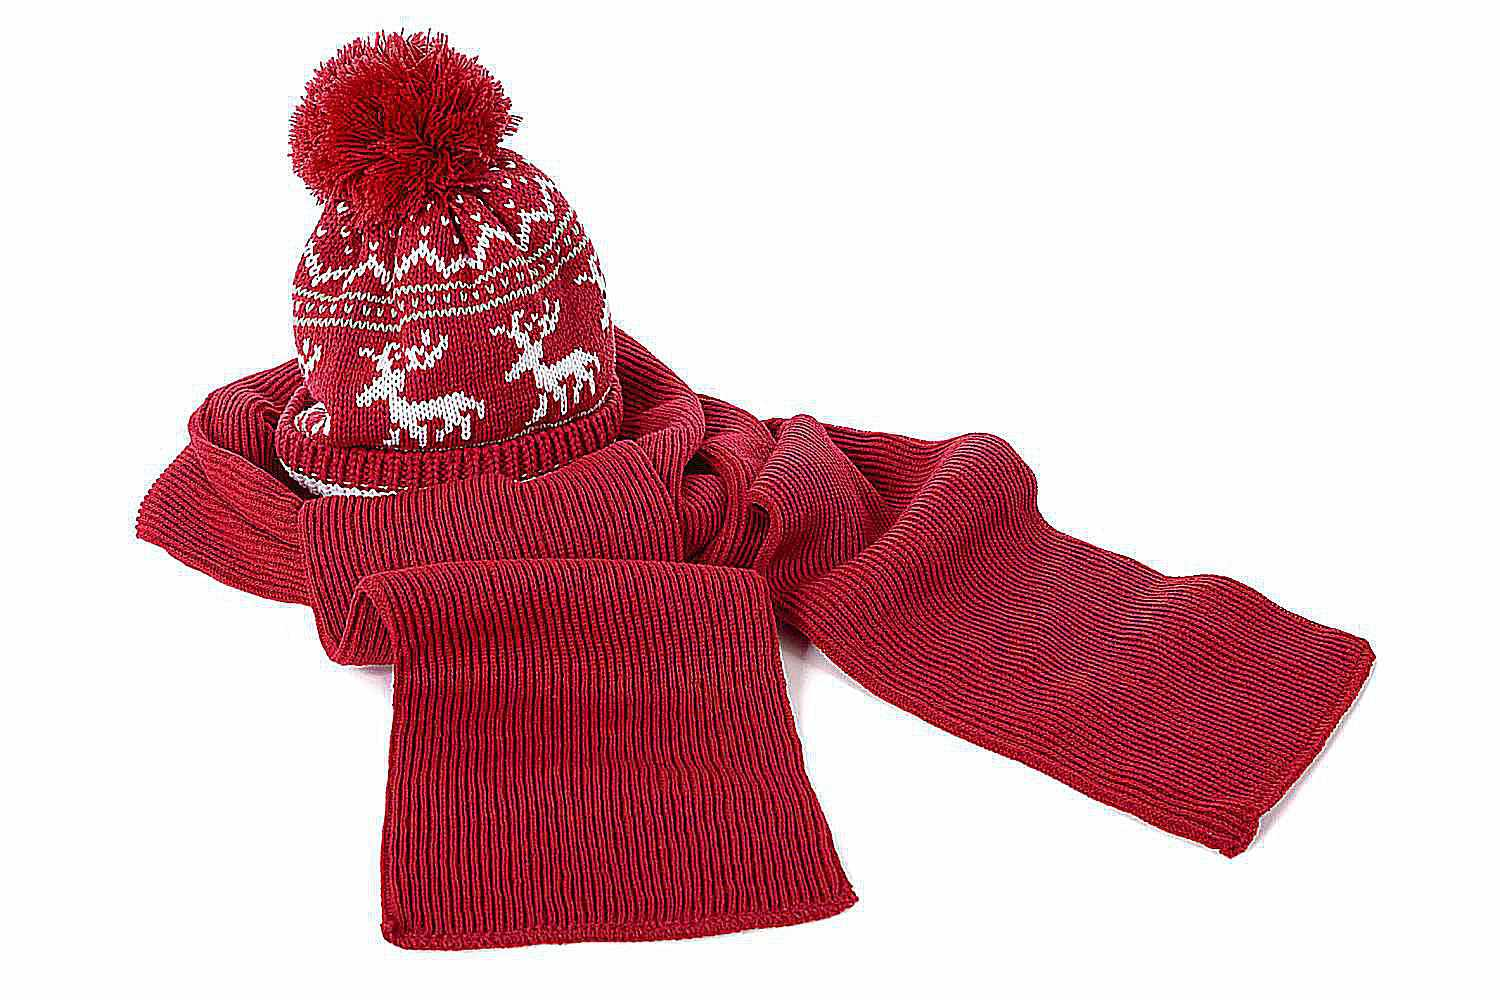 Wool hat and gloves